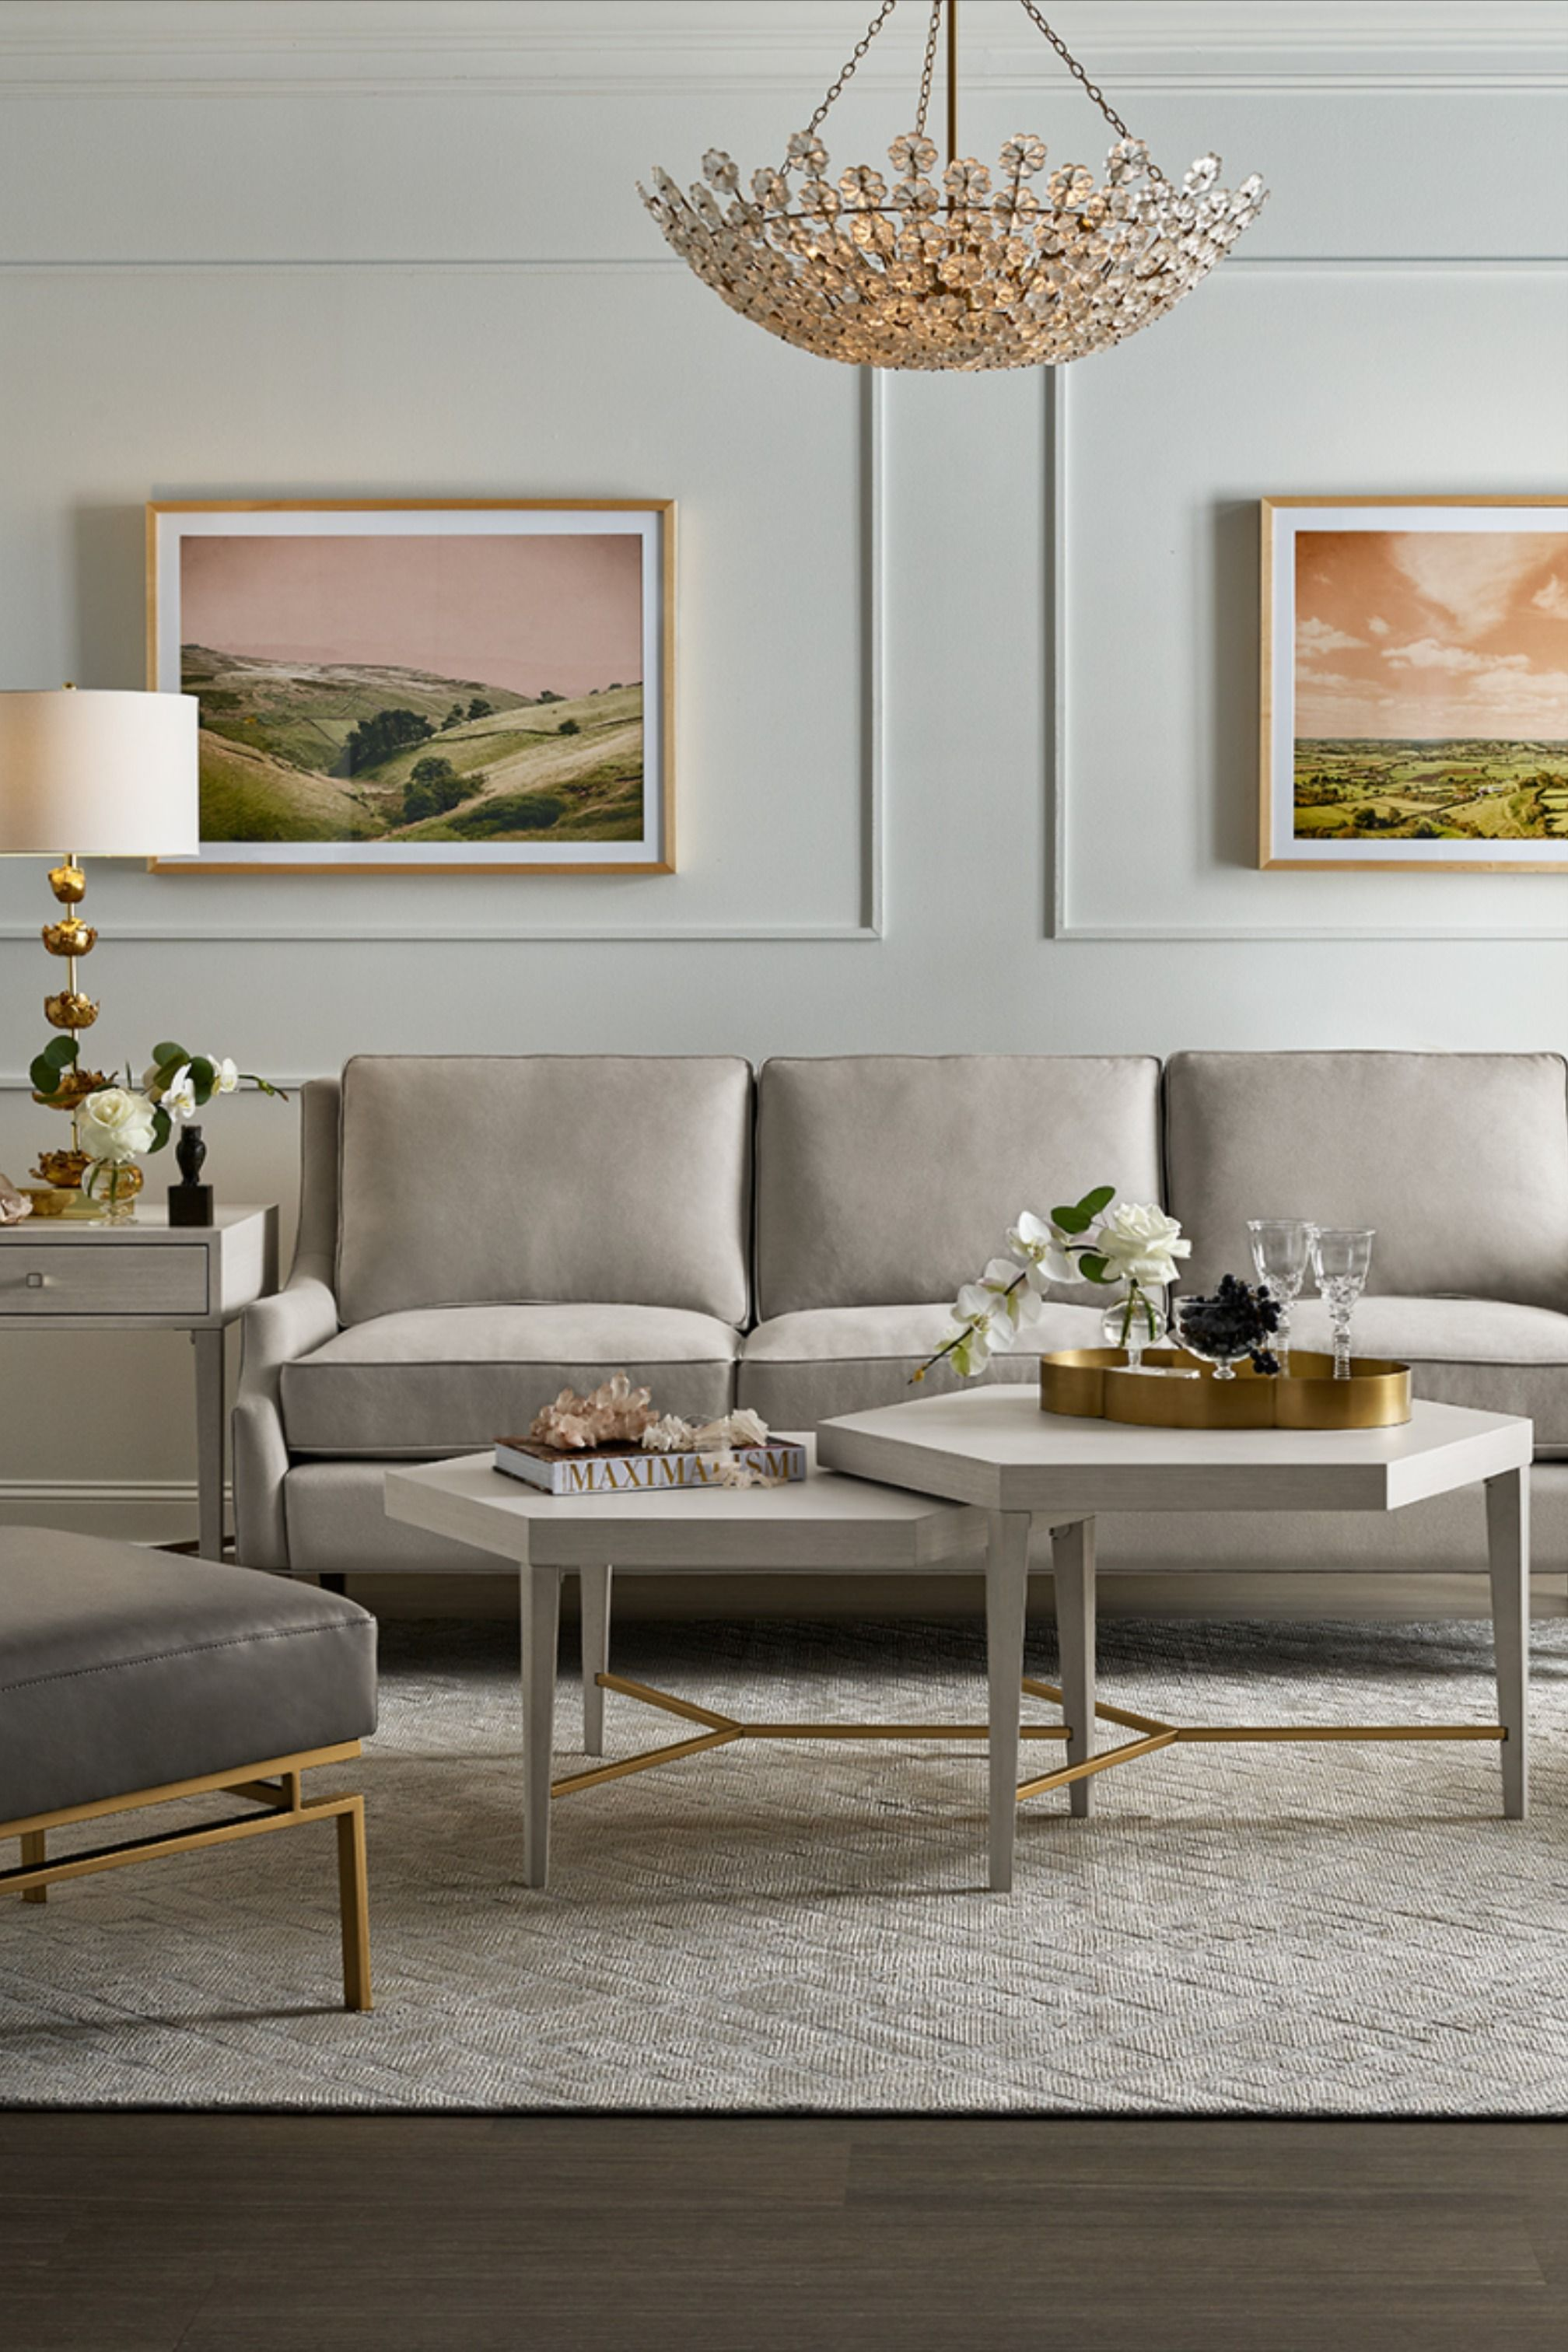 How To Style A Coffee Table In 2020 Coffee Table House Styles Living Room Decor [ 3024 x 2016 Pixel ]